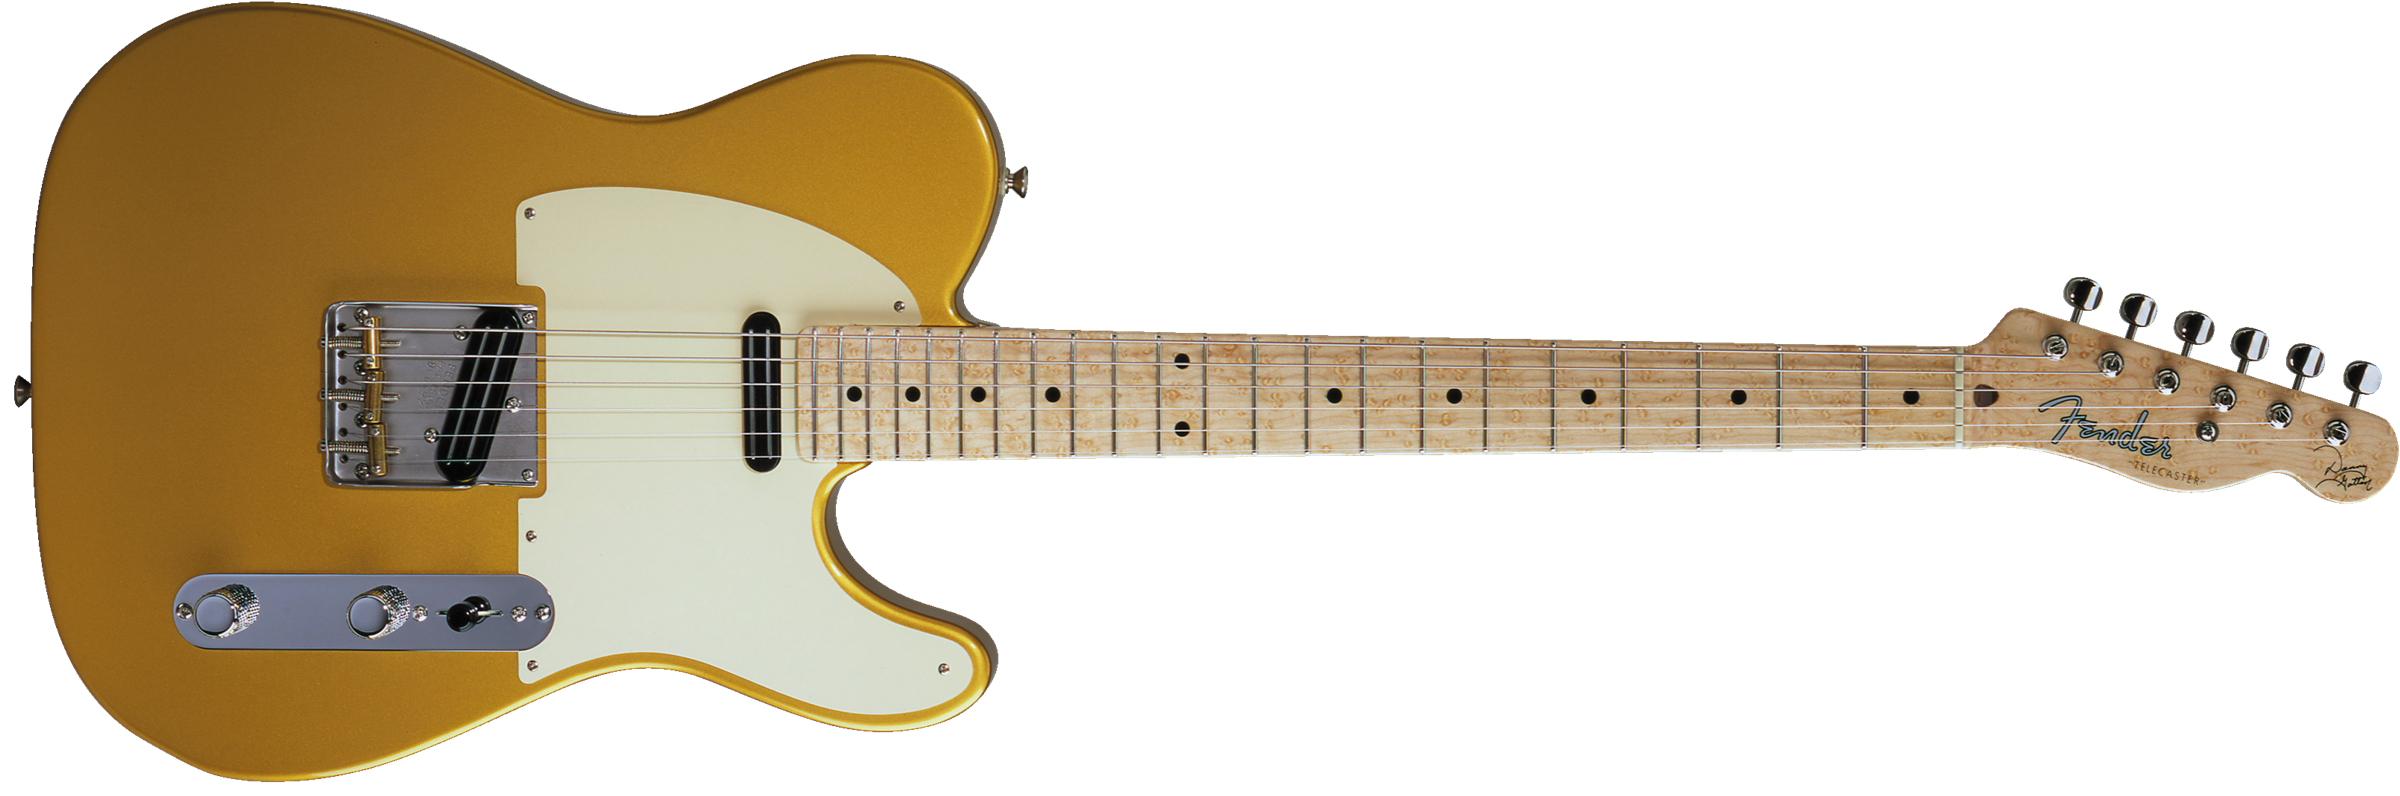 Danny Gatton Signature Telecaster® | Artist Series | Fender® Custom Shop